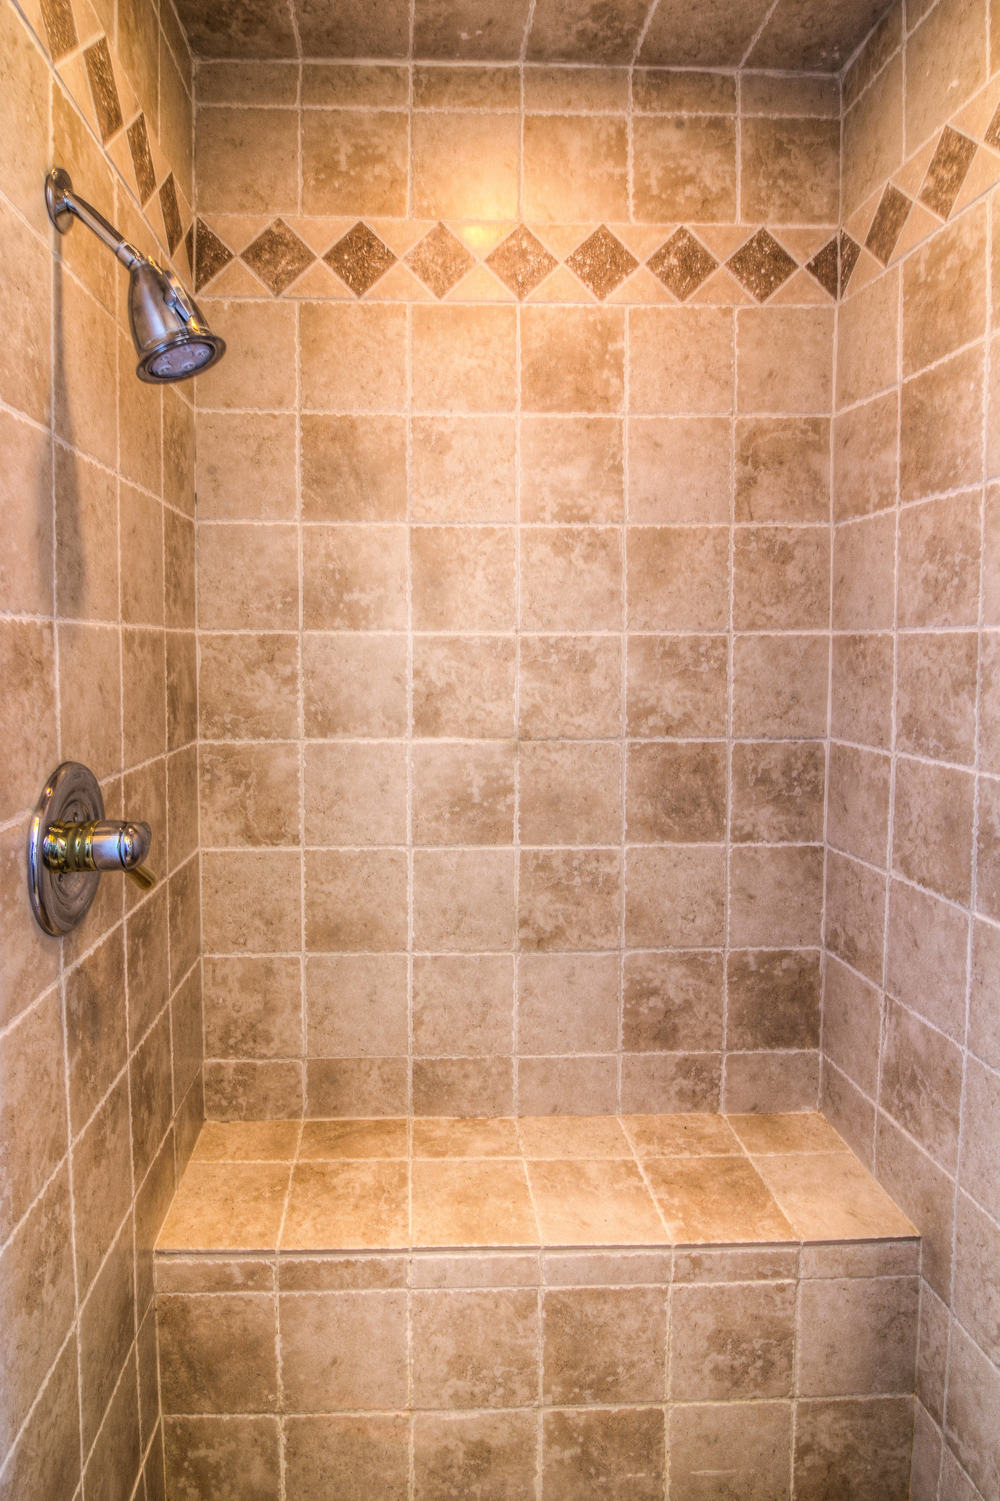 30 master bath 1 steam-2.jpg